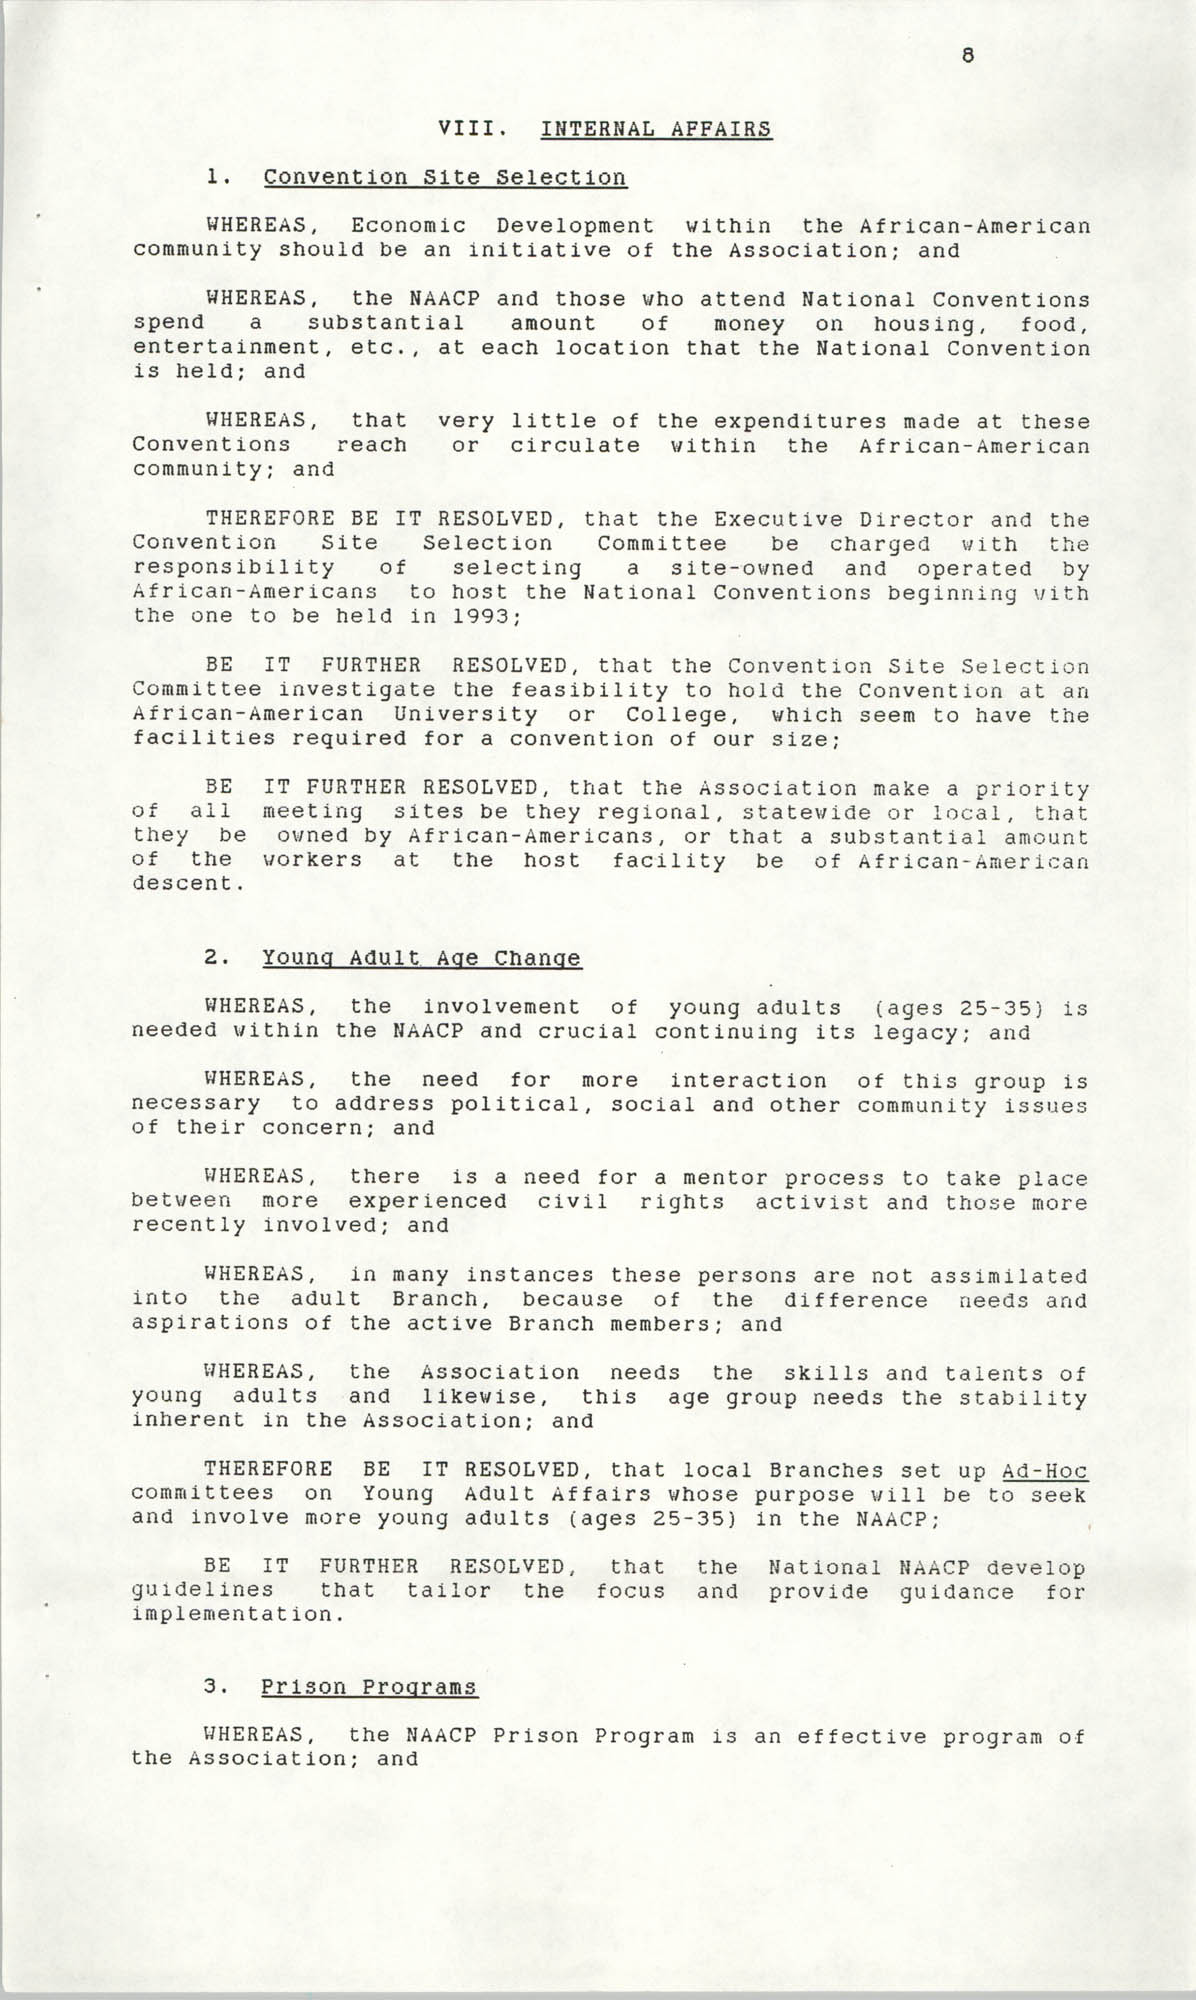 Resolutions Submitted Under Article X, Section 2 of the Constitution of the NAACP, 1990, Page 8